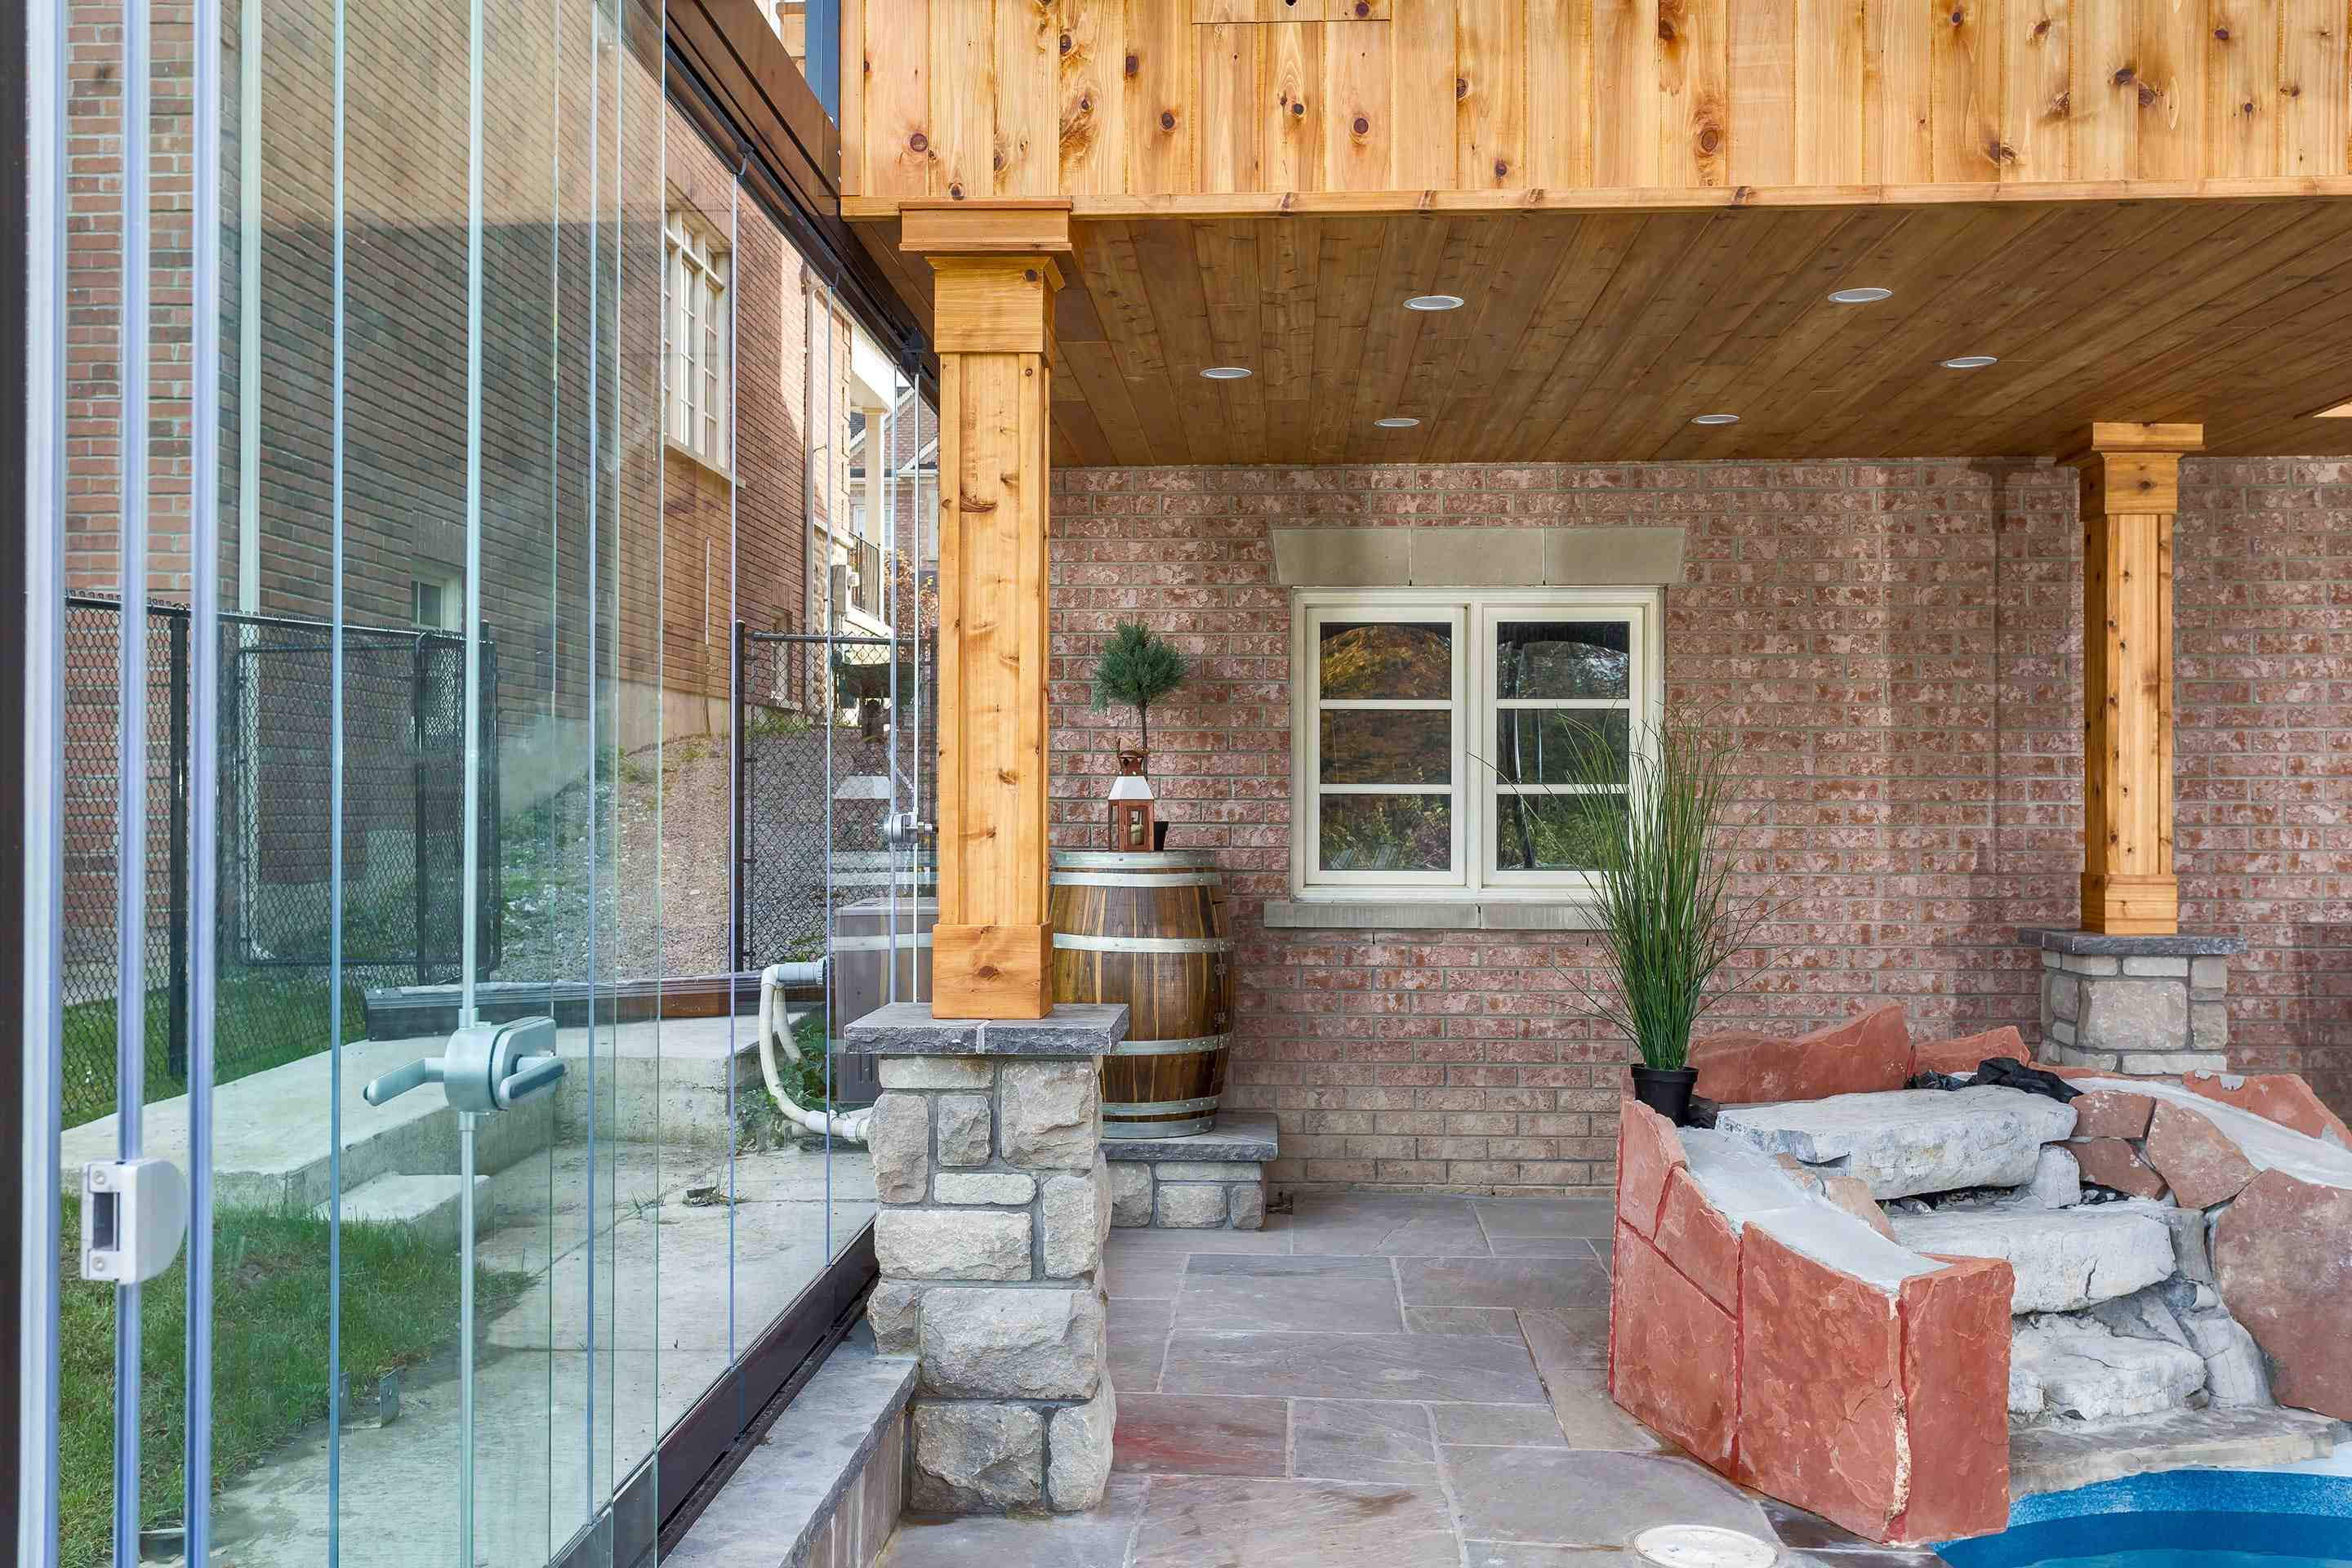 sunrooms, sunroom, sunrooms in canada, sunrooms in toronto, sunrooms in vancouver, sunrooms in hamilton, sunroom enclosure, glass walls, lumon canada,lumon